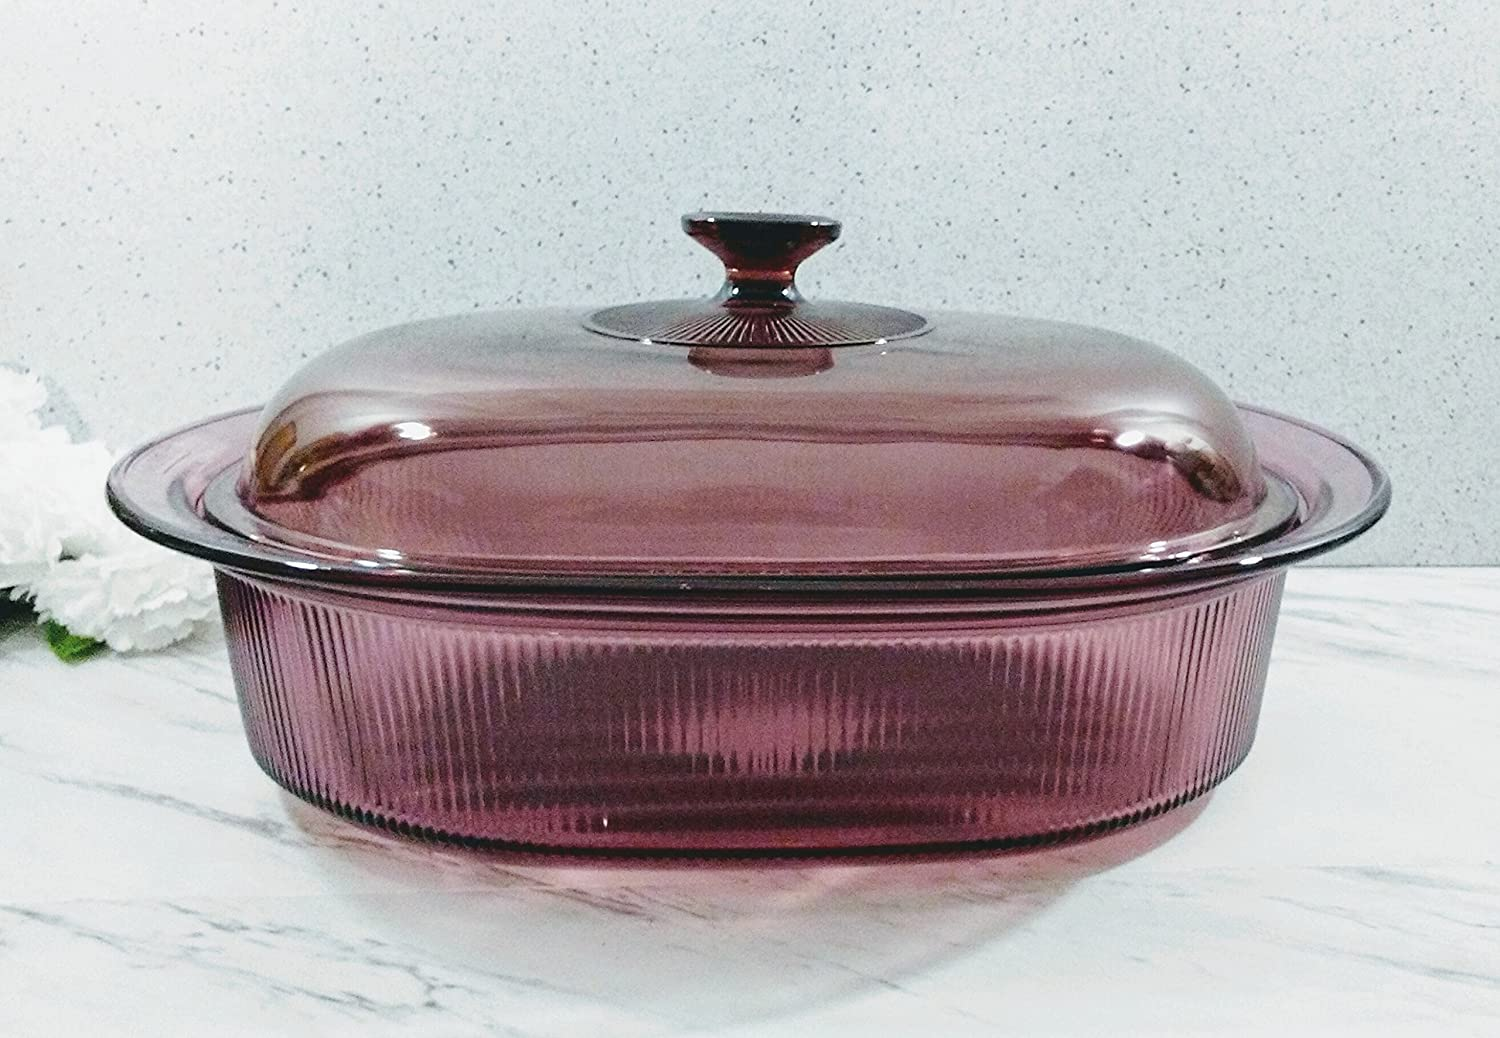 Pyrex Corning Cranberry 4 Quart Qt Set Ribbed Dutch Oven Roaster Pan Dish With Glass Lid